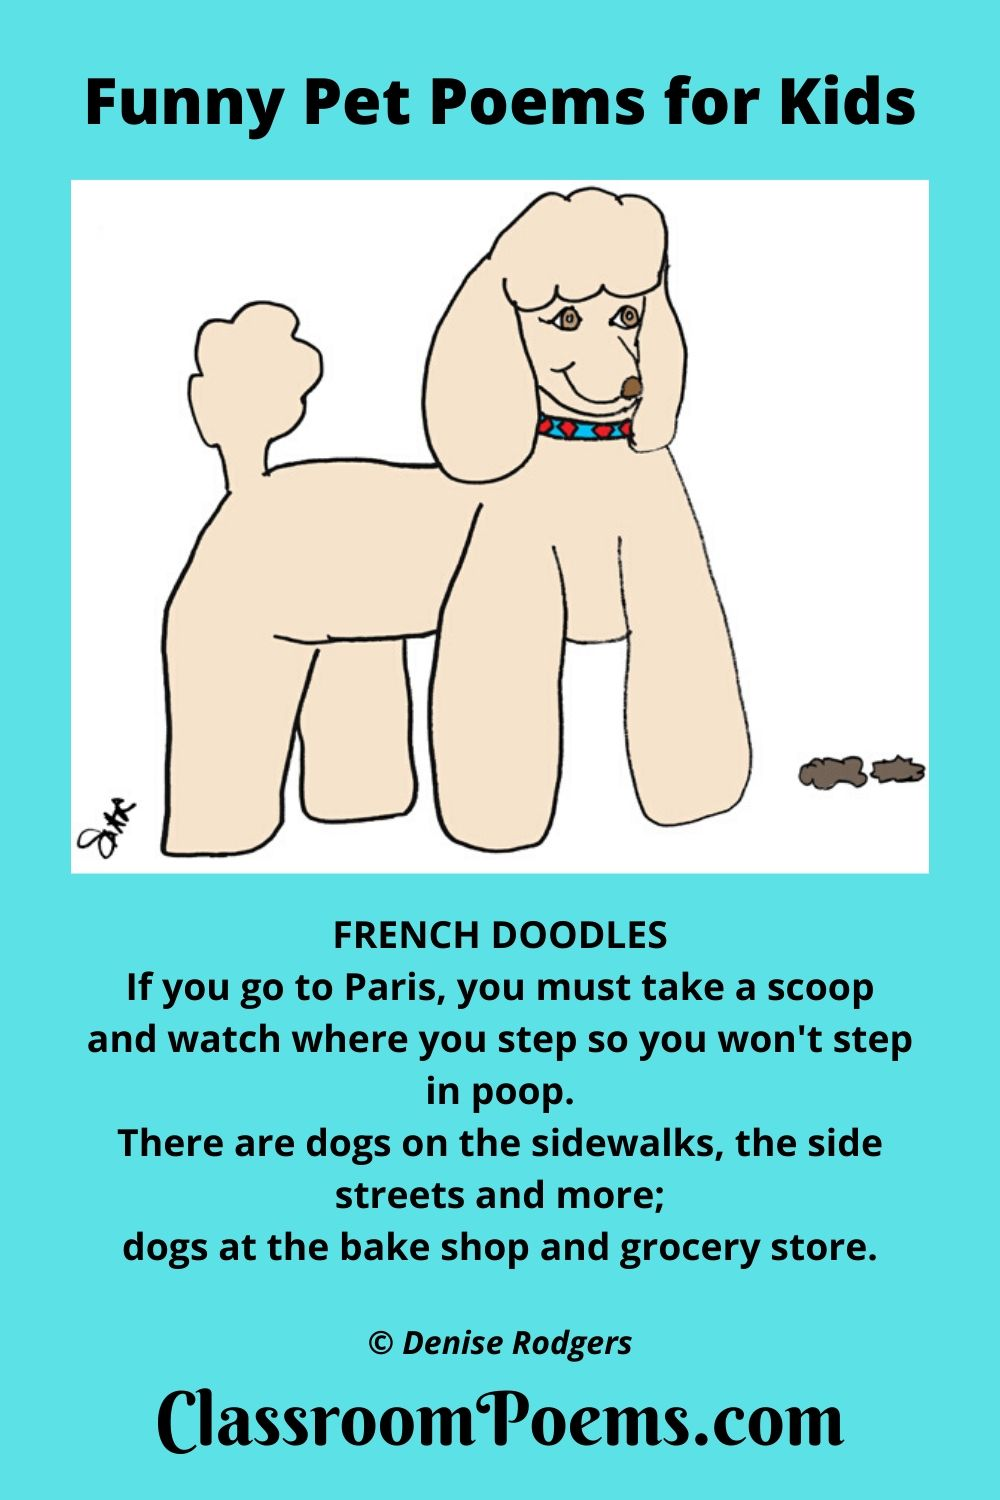 Funny dog poems, funny pet poems, French Doodles (a poem about poop) by Denise Rodgers on ClassroomPoems.com.